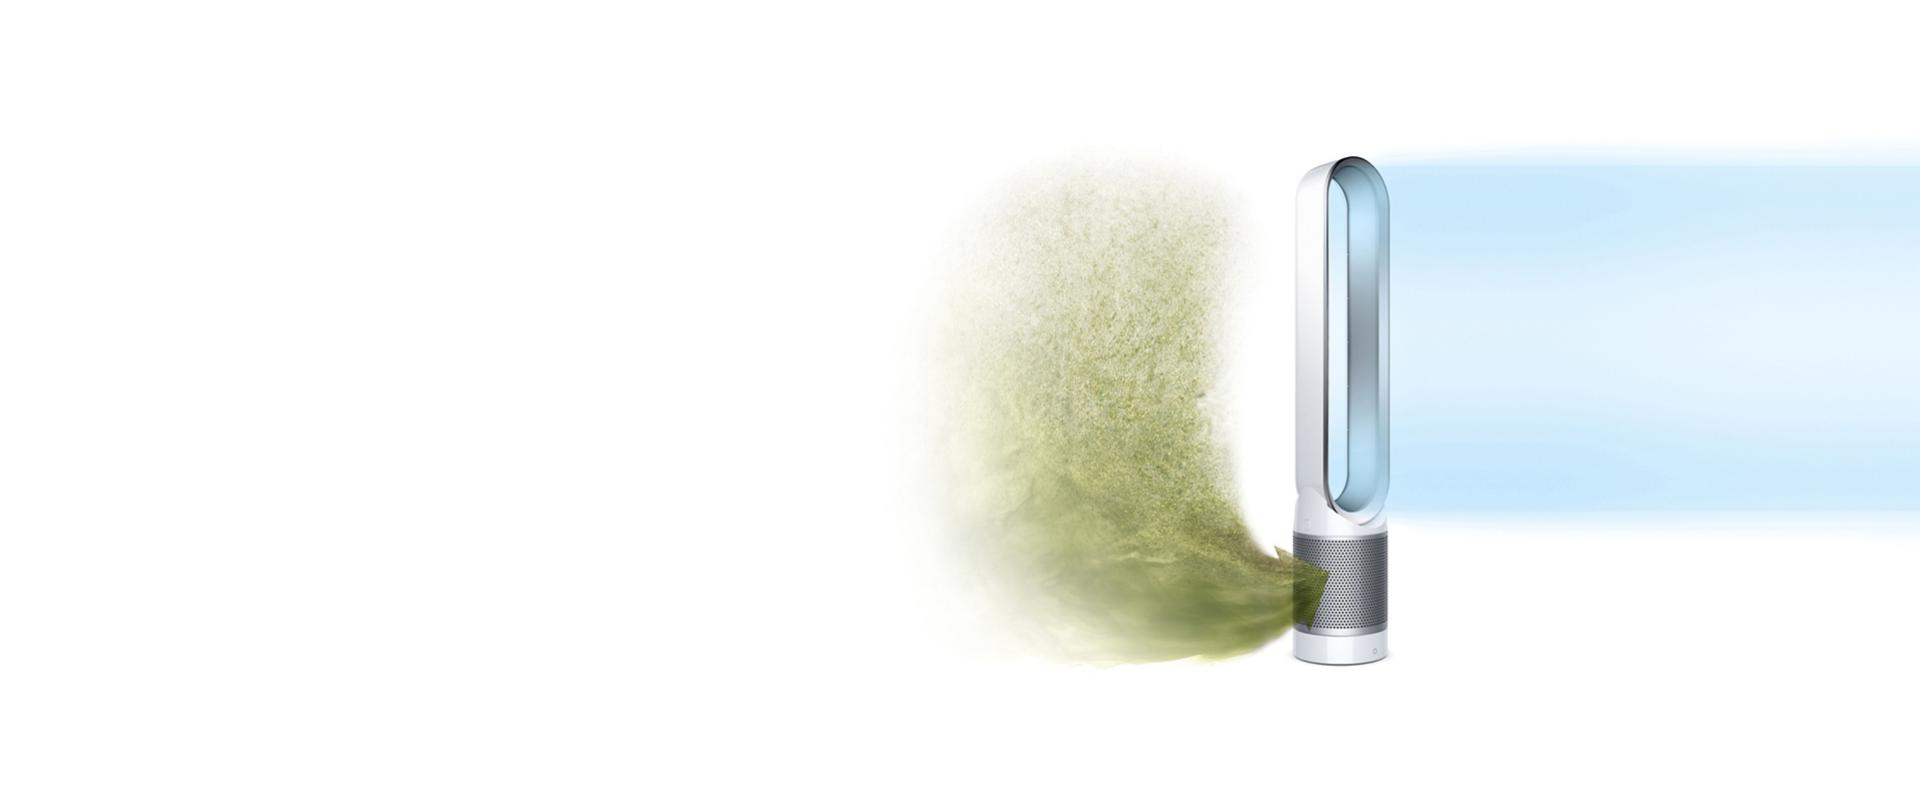 Dyson pure cool link capturing allergens and projecting cool air